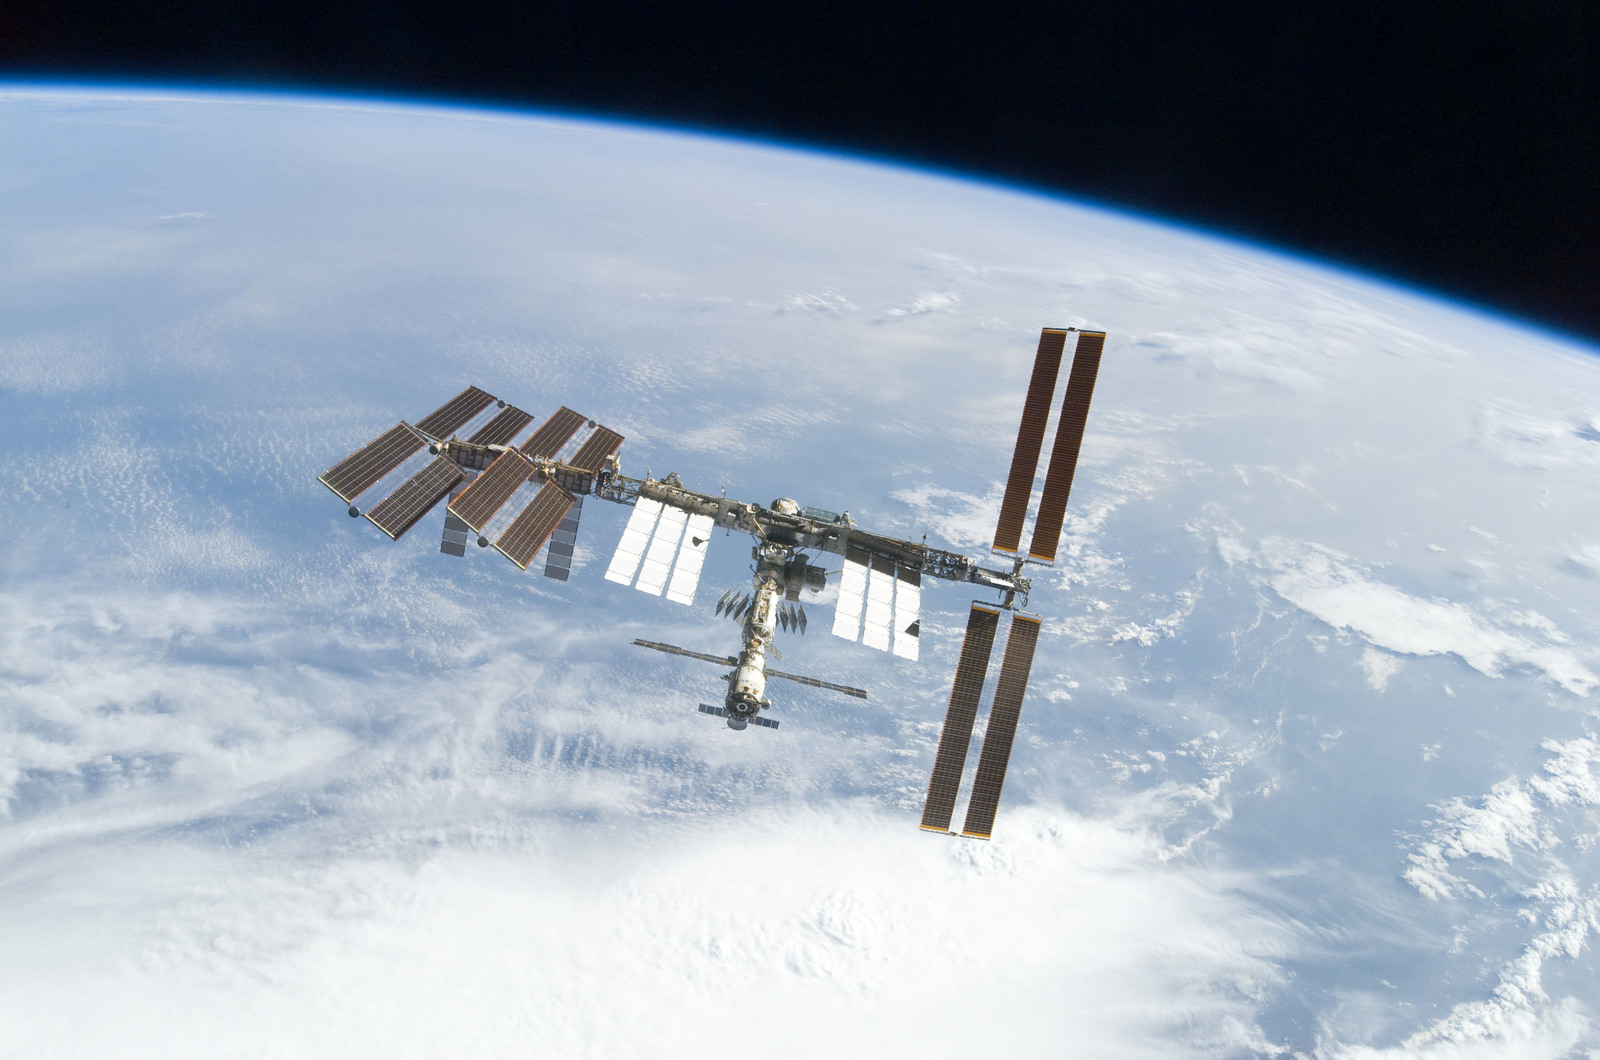 S122E010941 - STS-122 - View of ISS after STS-122 Undocking